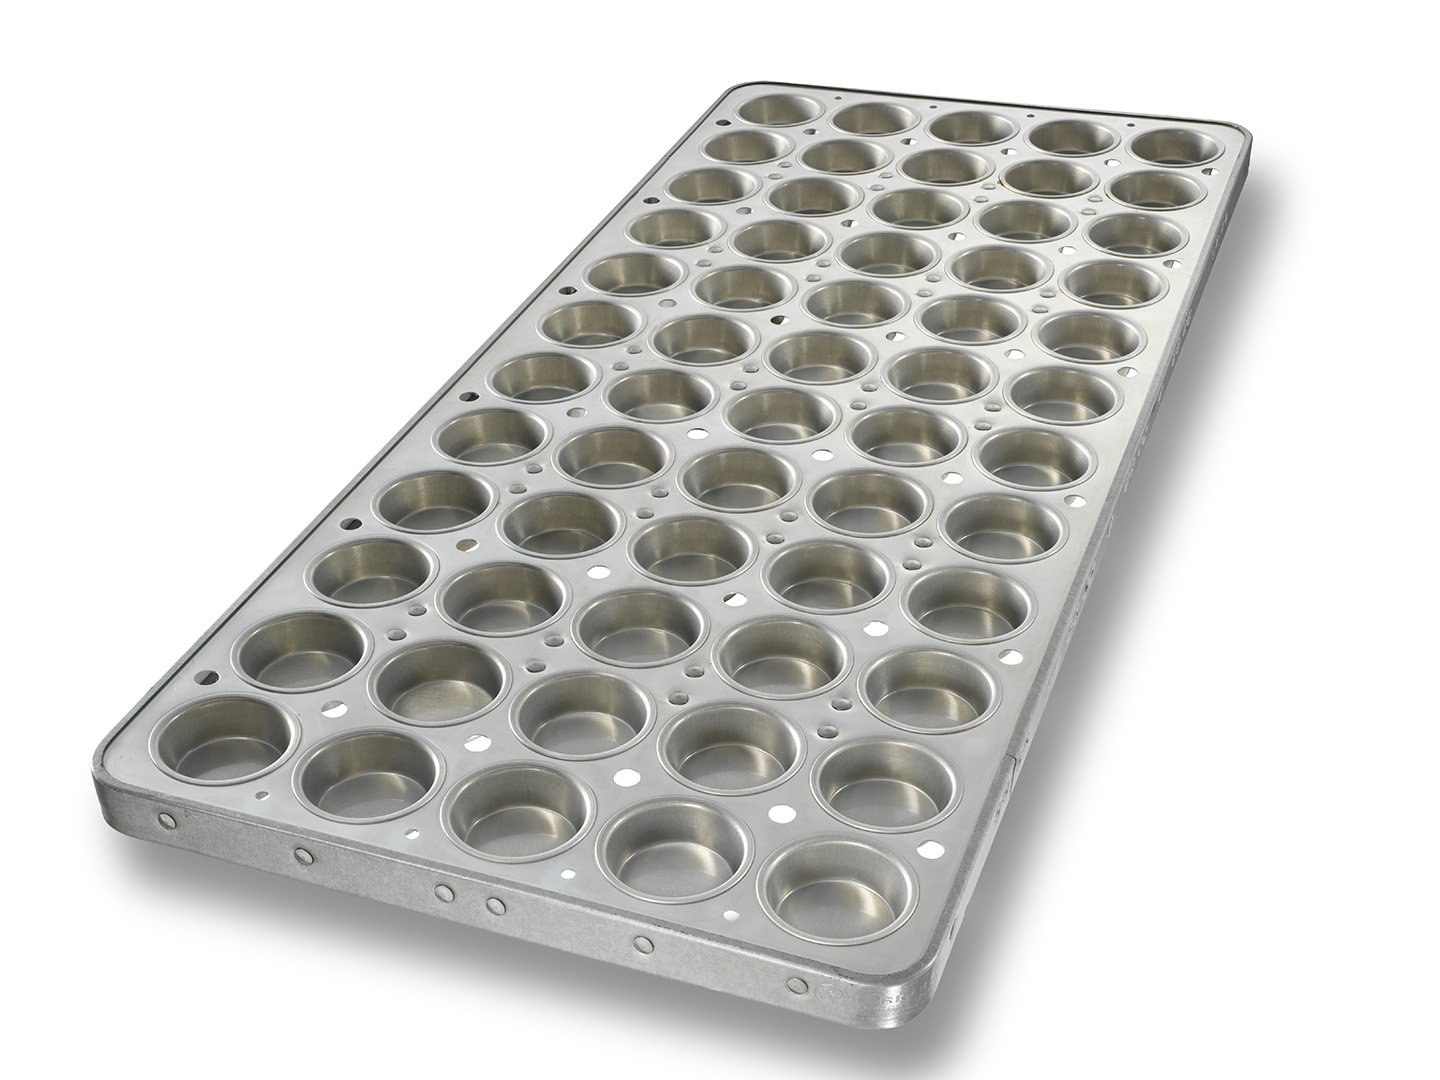 Muffin Pan with Seamed Cups and Drain Holes in Panel – AMERICOAT® Coating